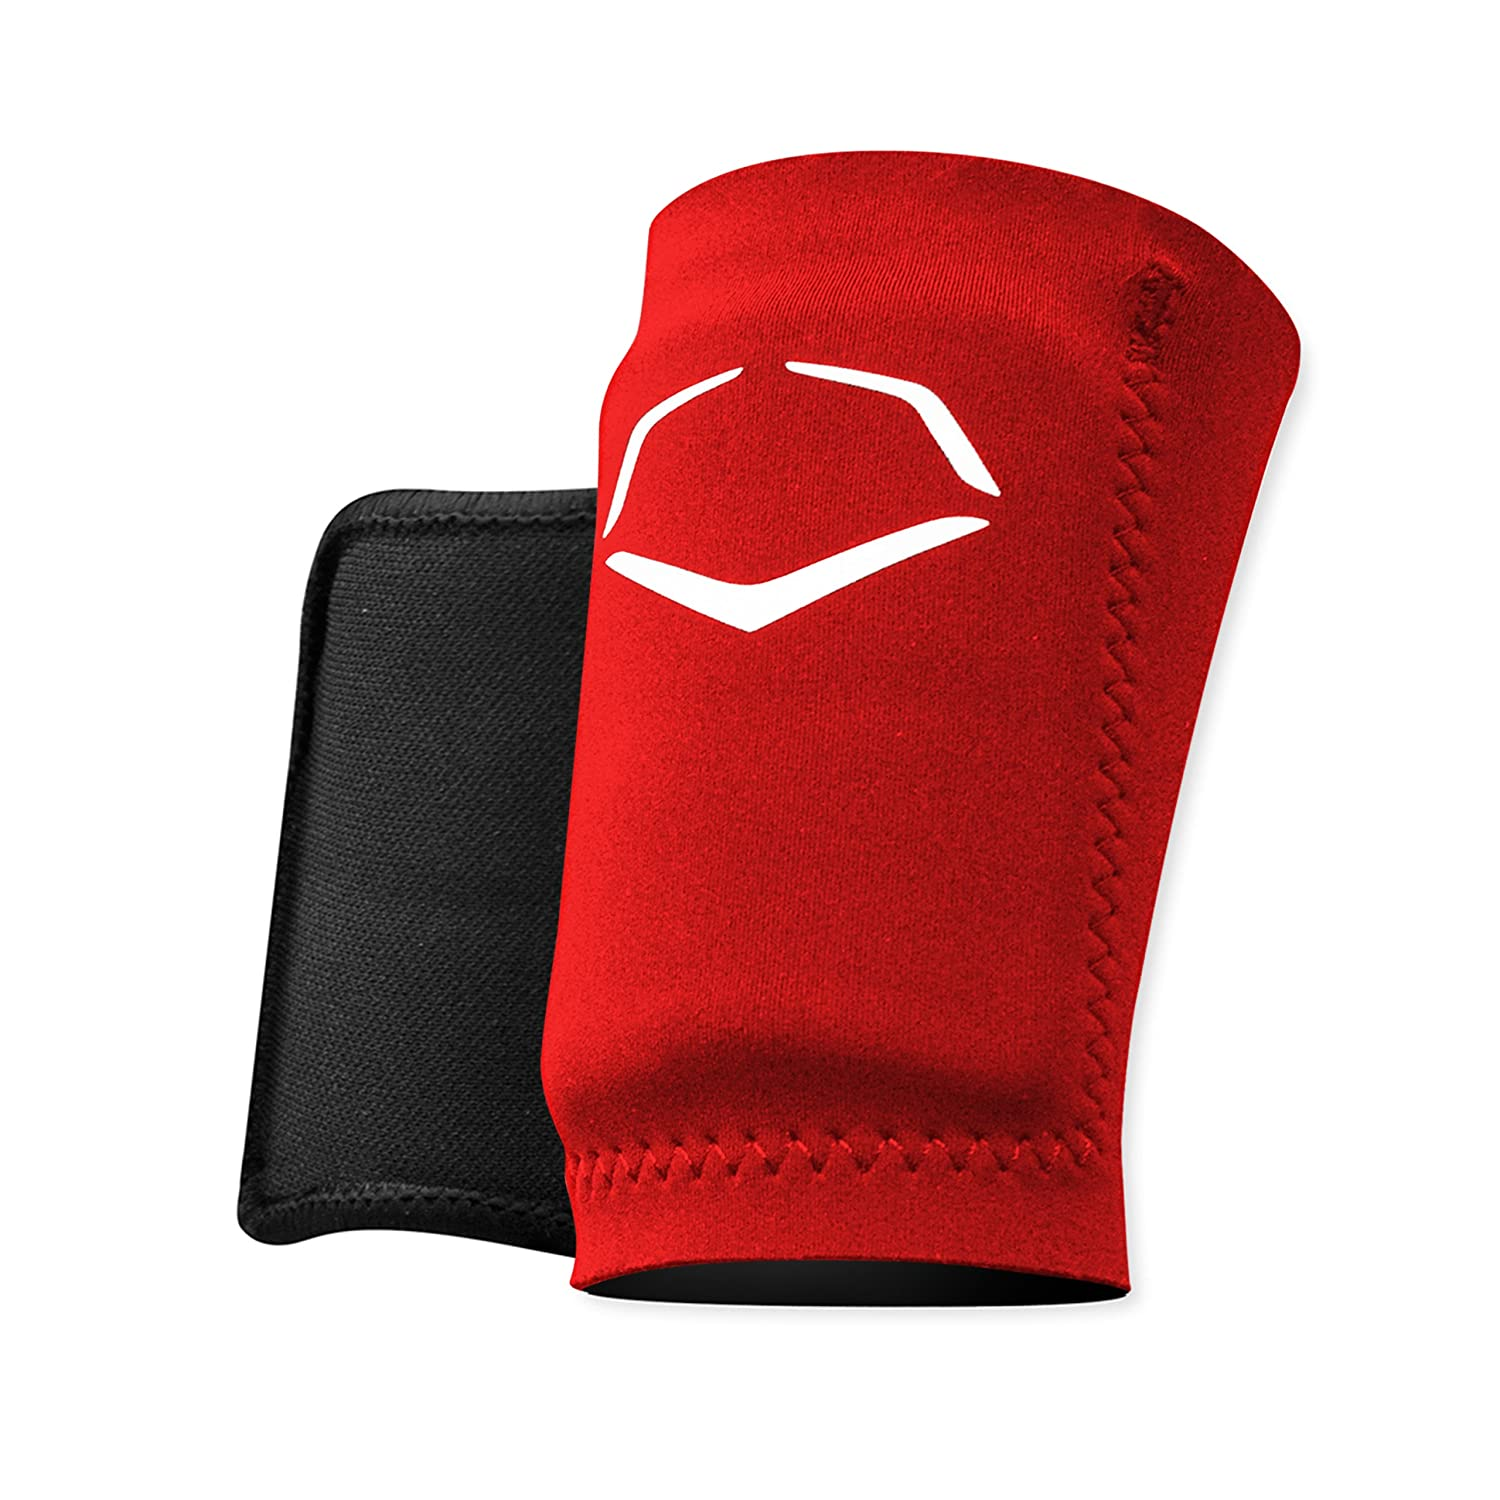 Amazoncom Evoshield Protective Wrist Guard Sports Outdoors